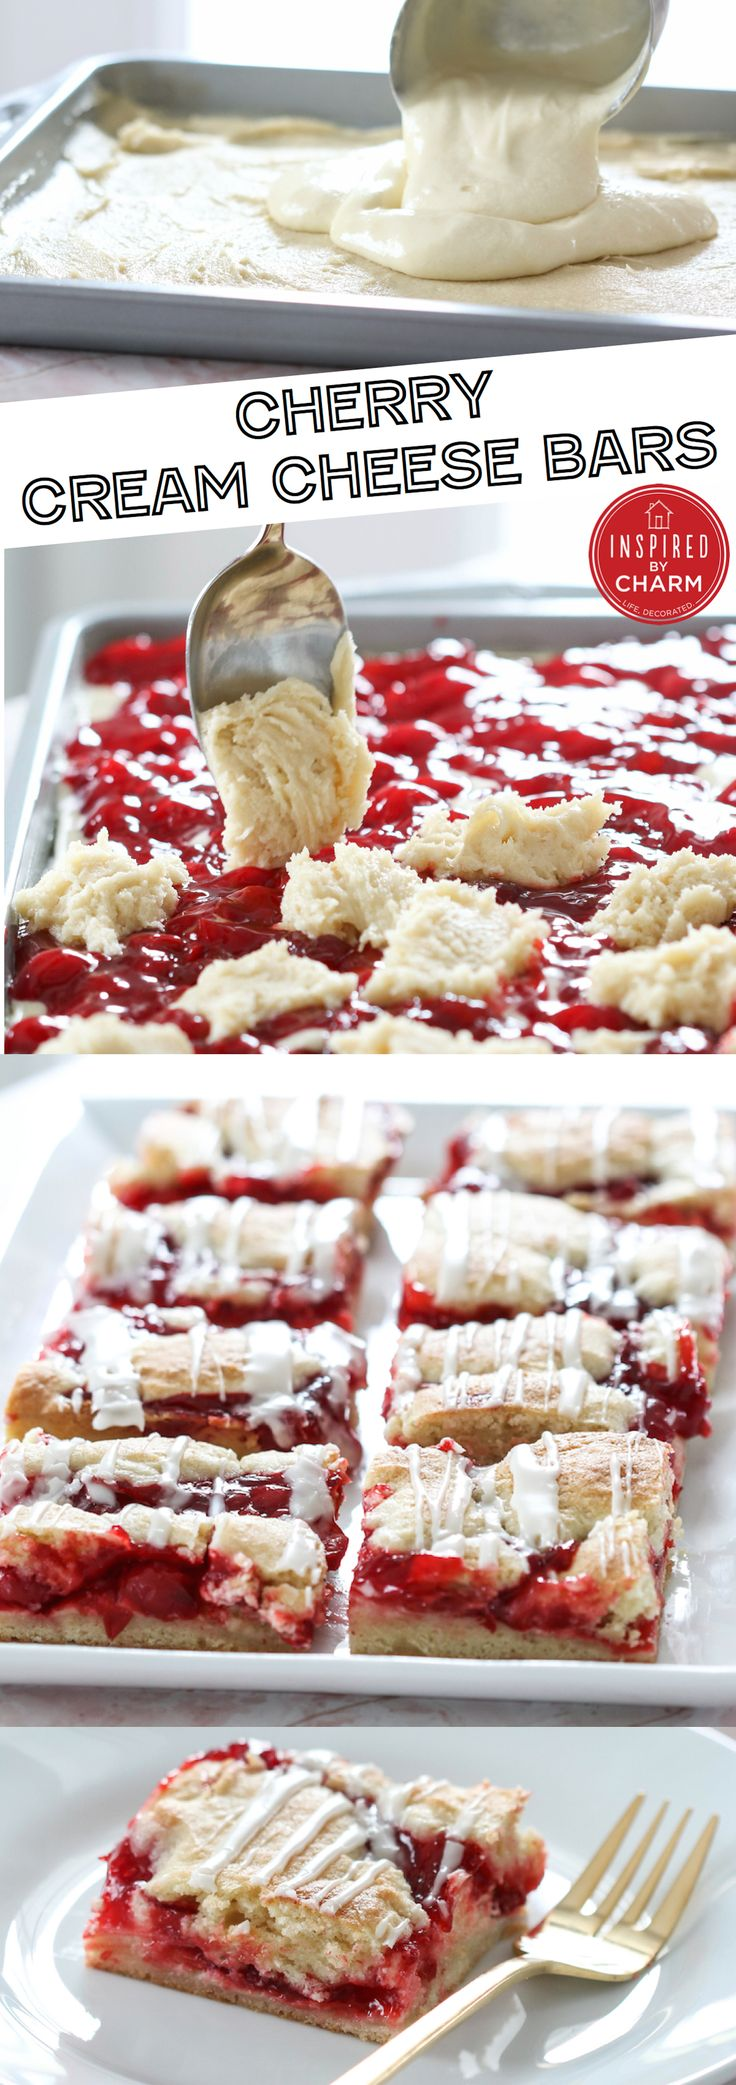 Cherry Cream Cheese Bars - a great breakfast treat or perfect for dessert! Love cherries for the holidays.